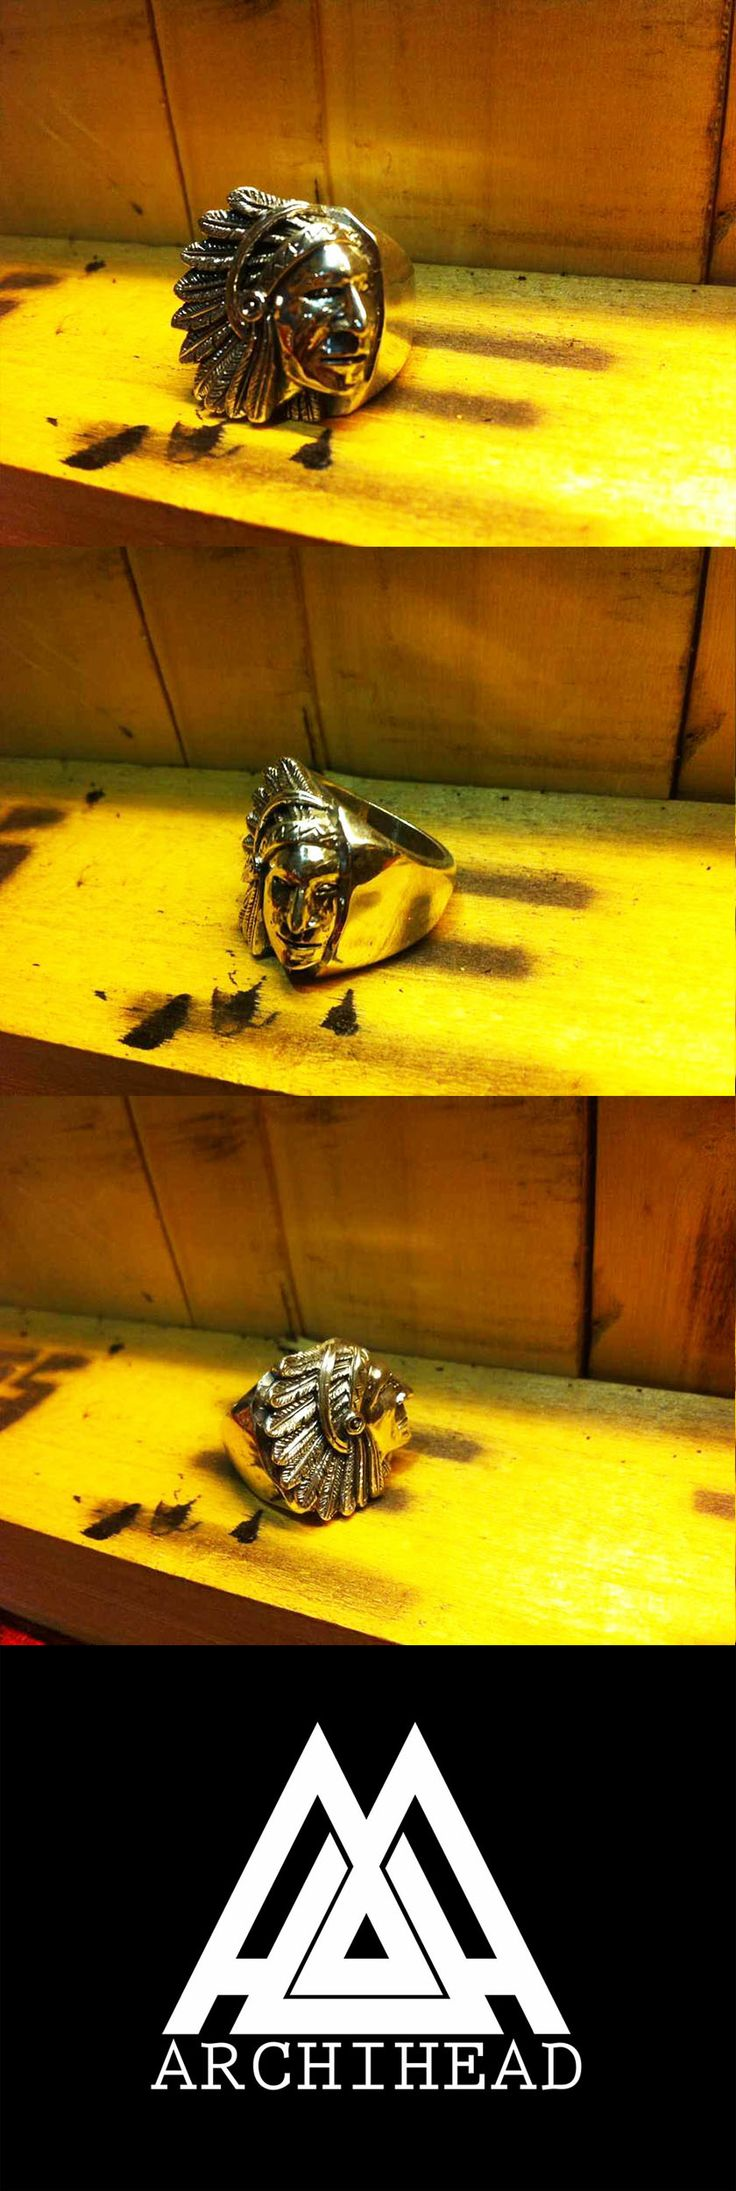 ARCHIHEAD Rings (Indian) Archiheadproject@gmail.com